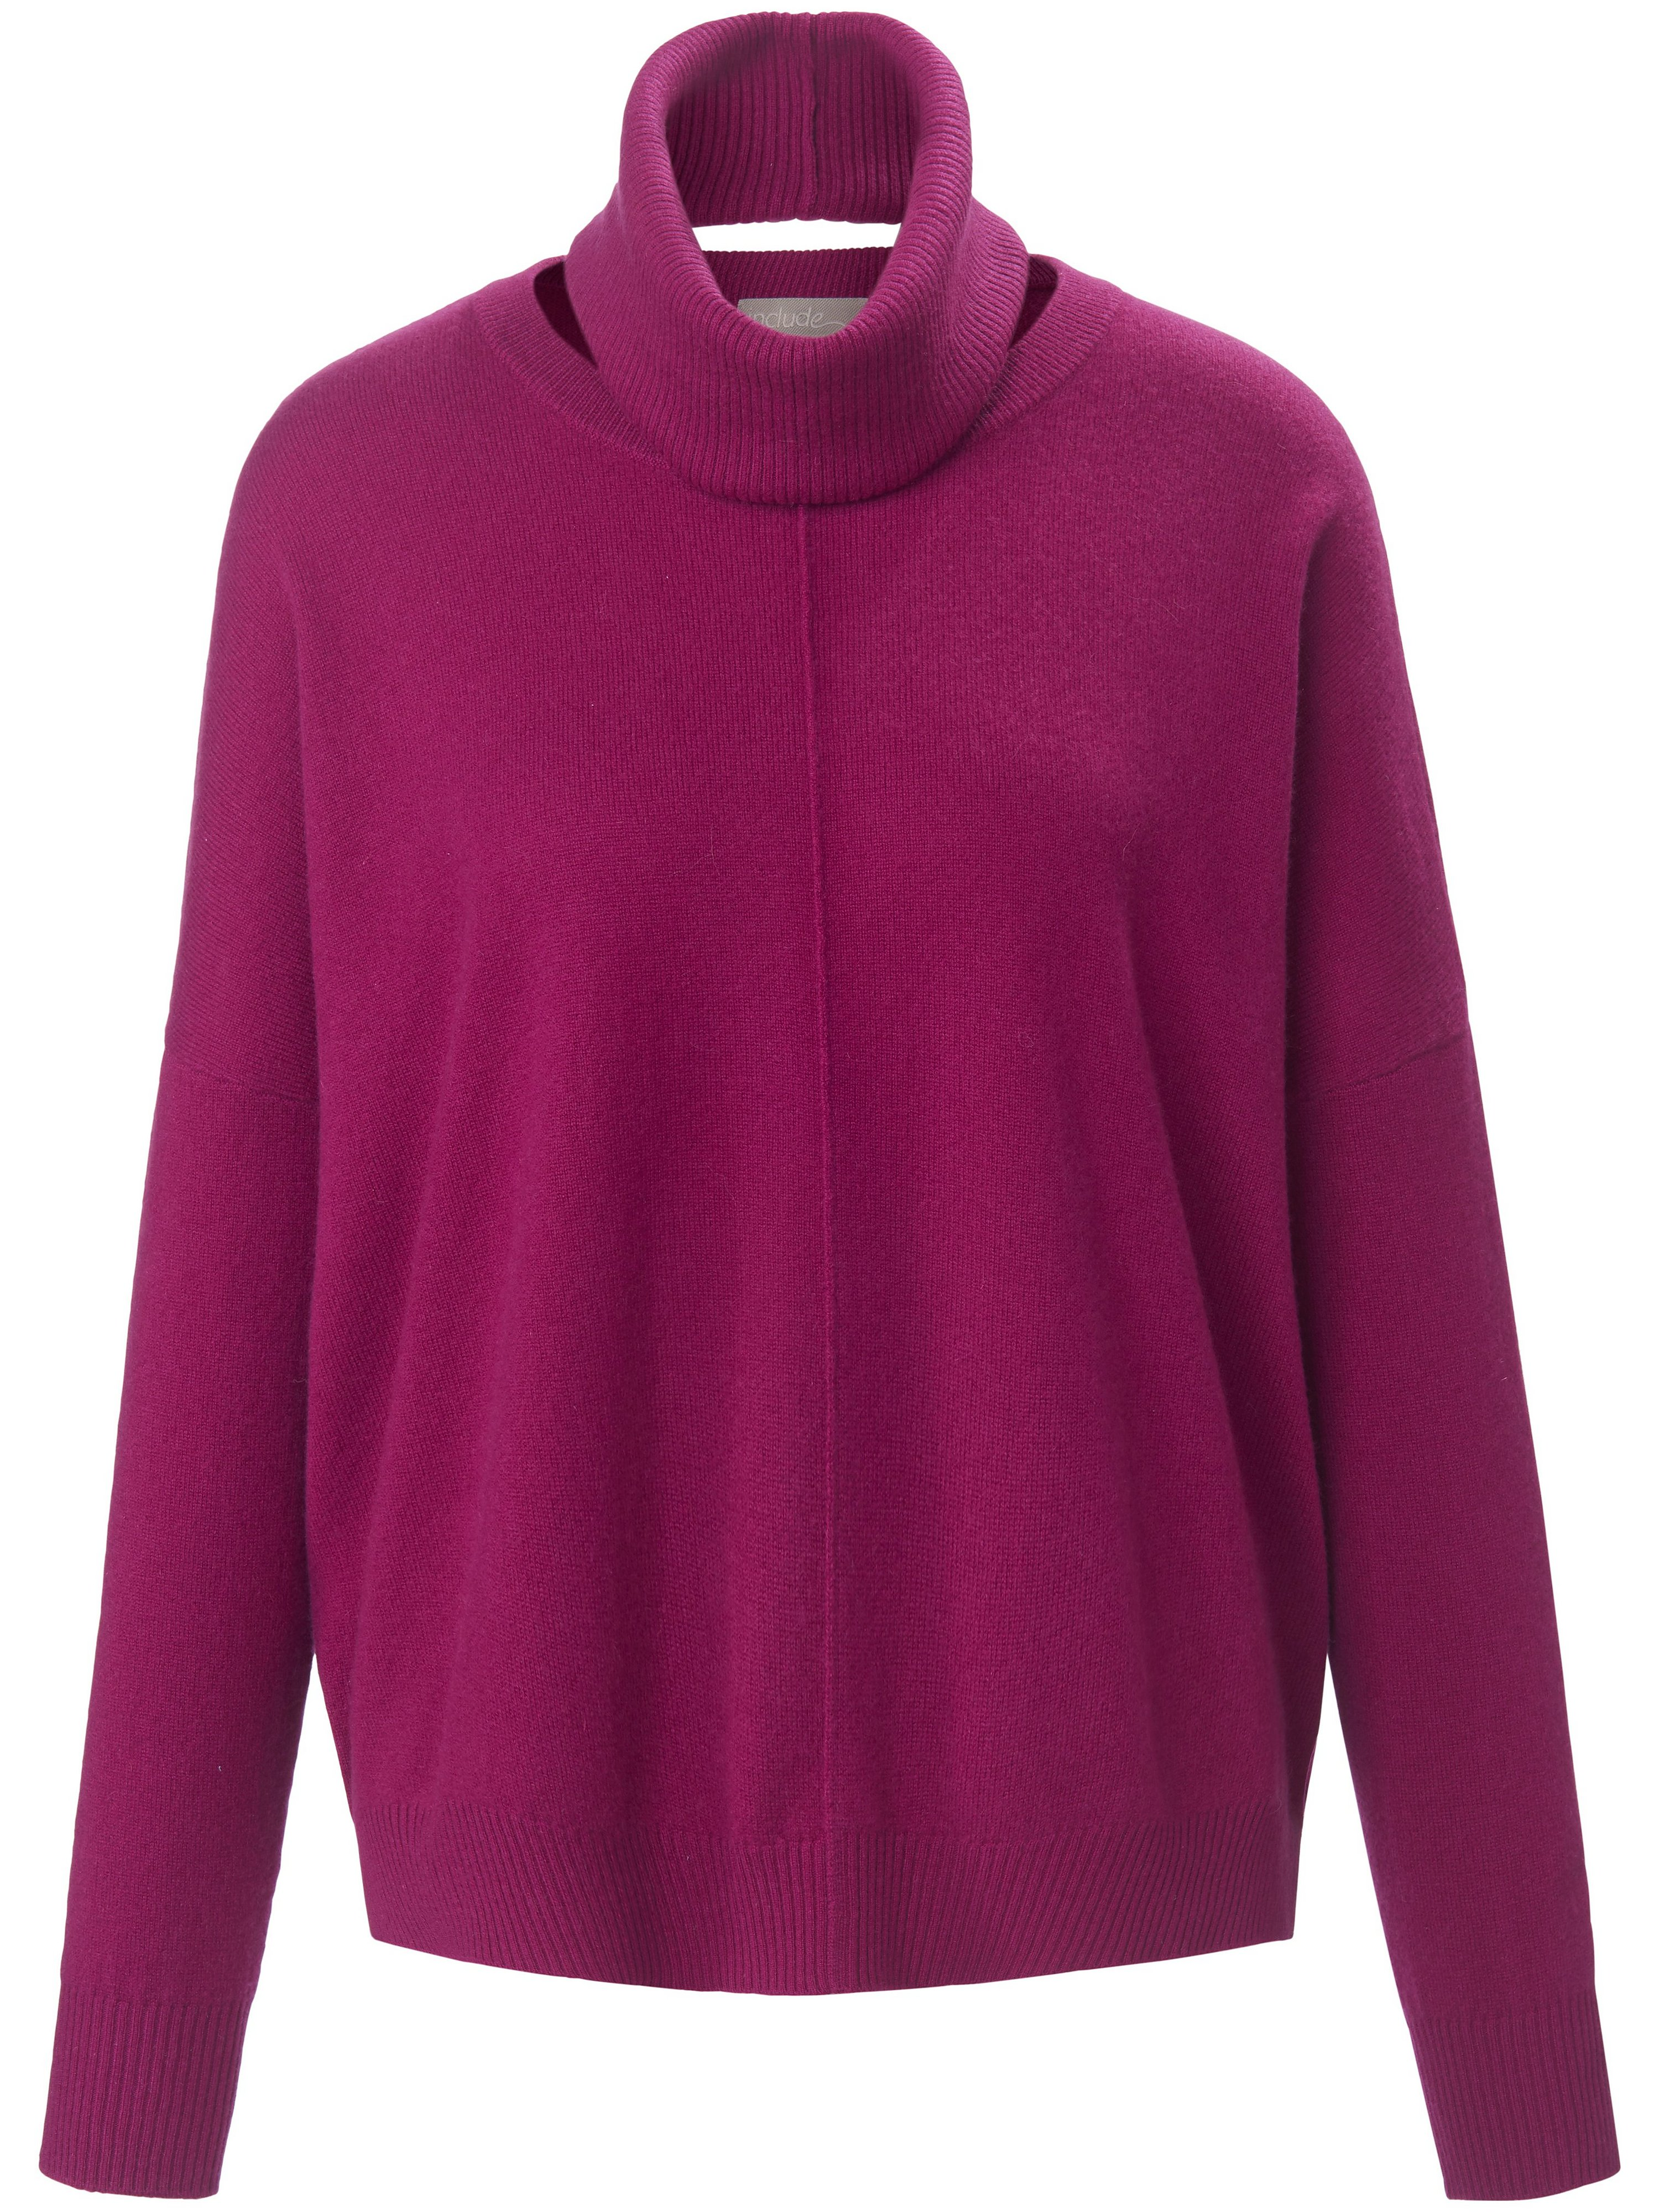 Le pull 100% cachemire  include mauve taille 50